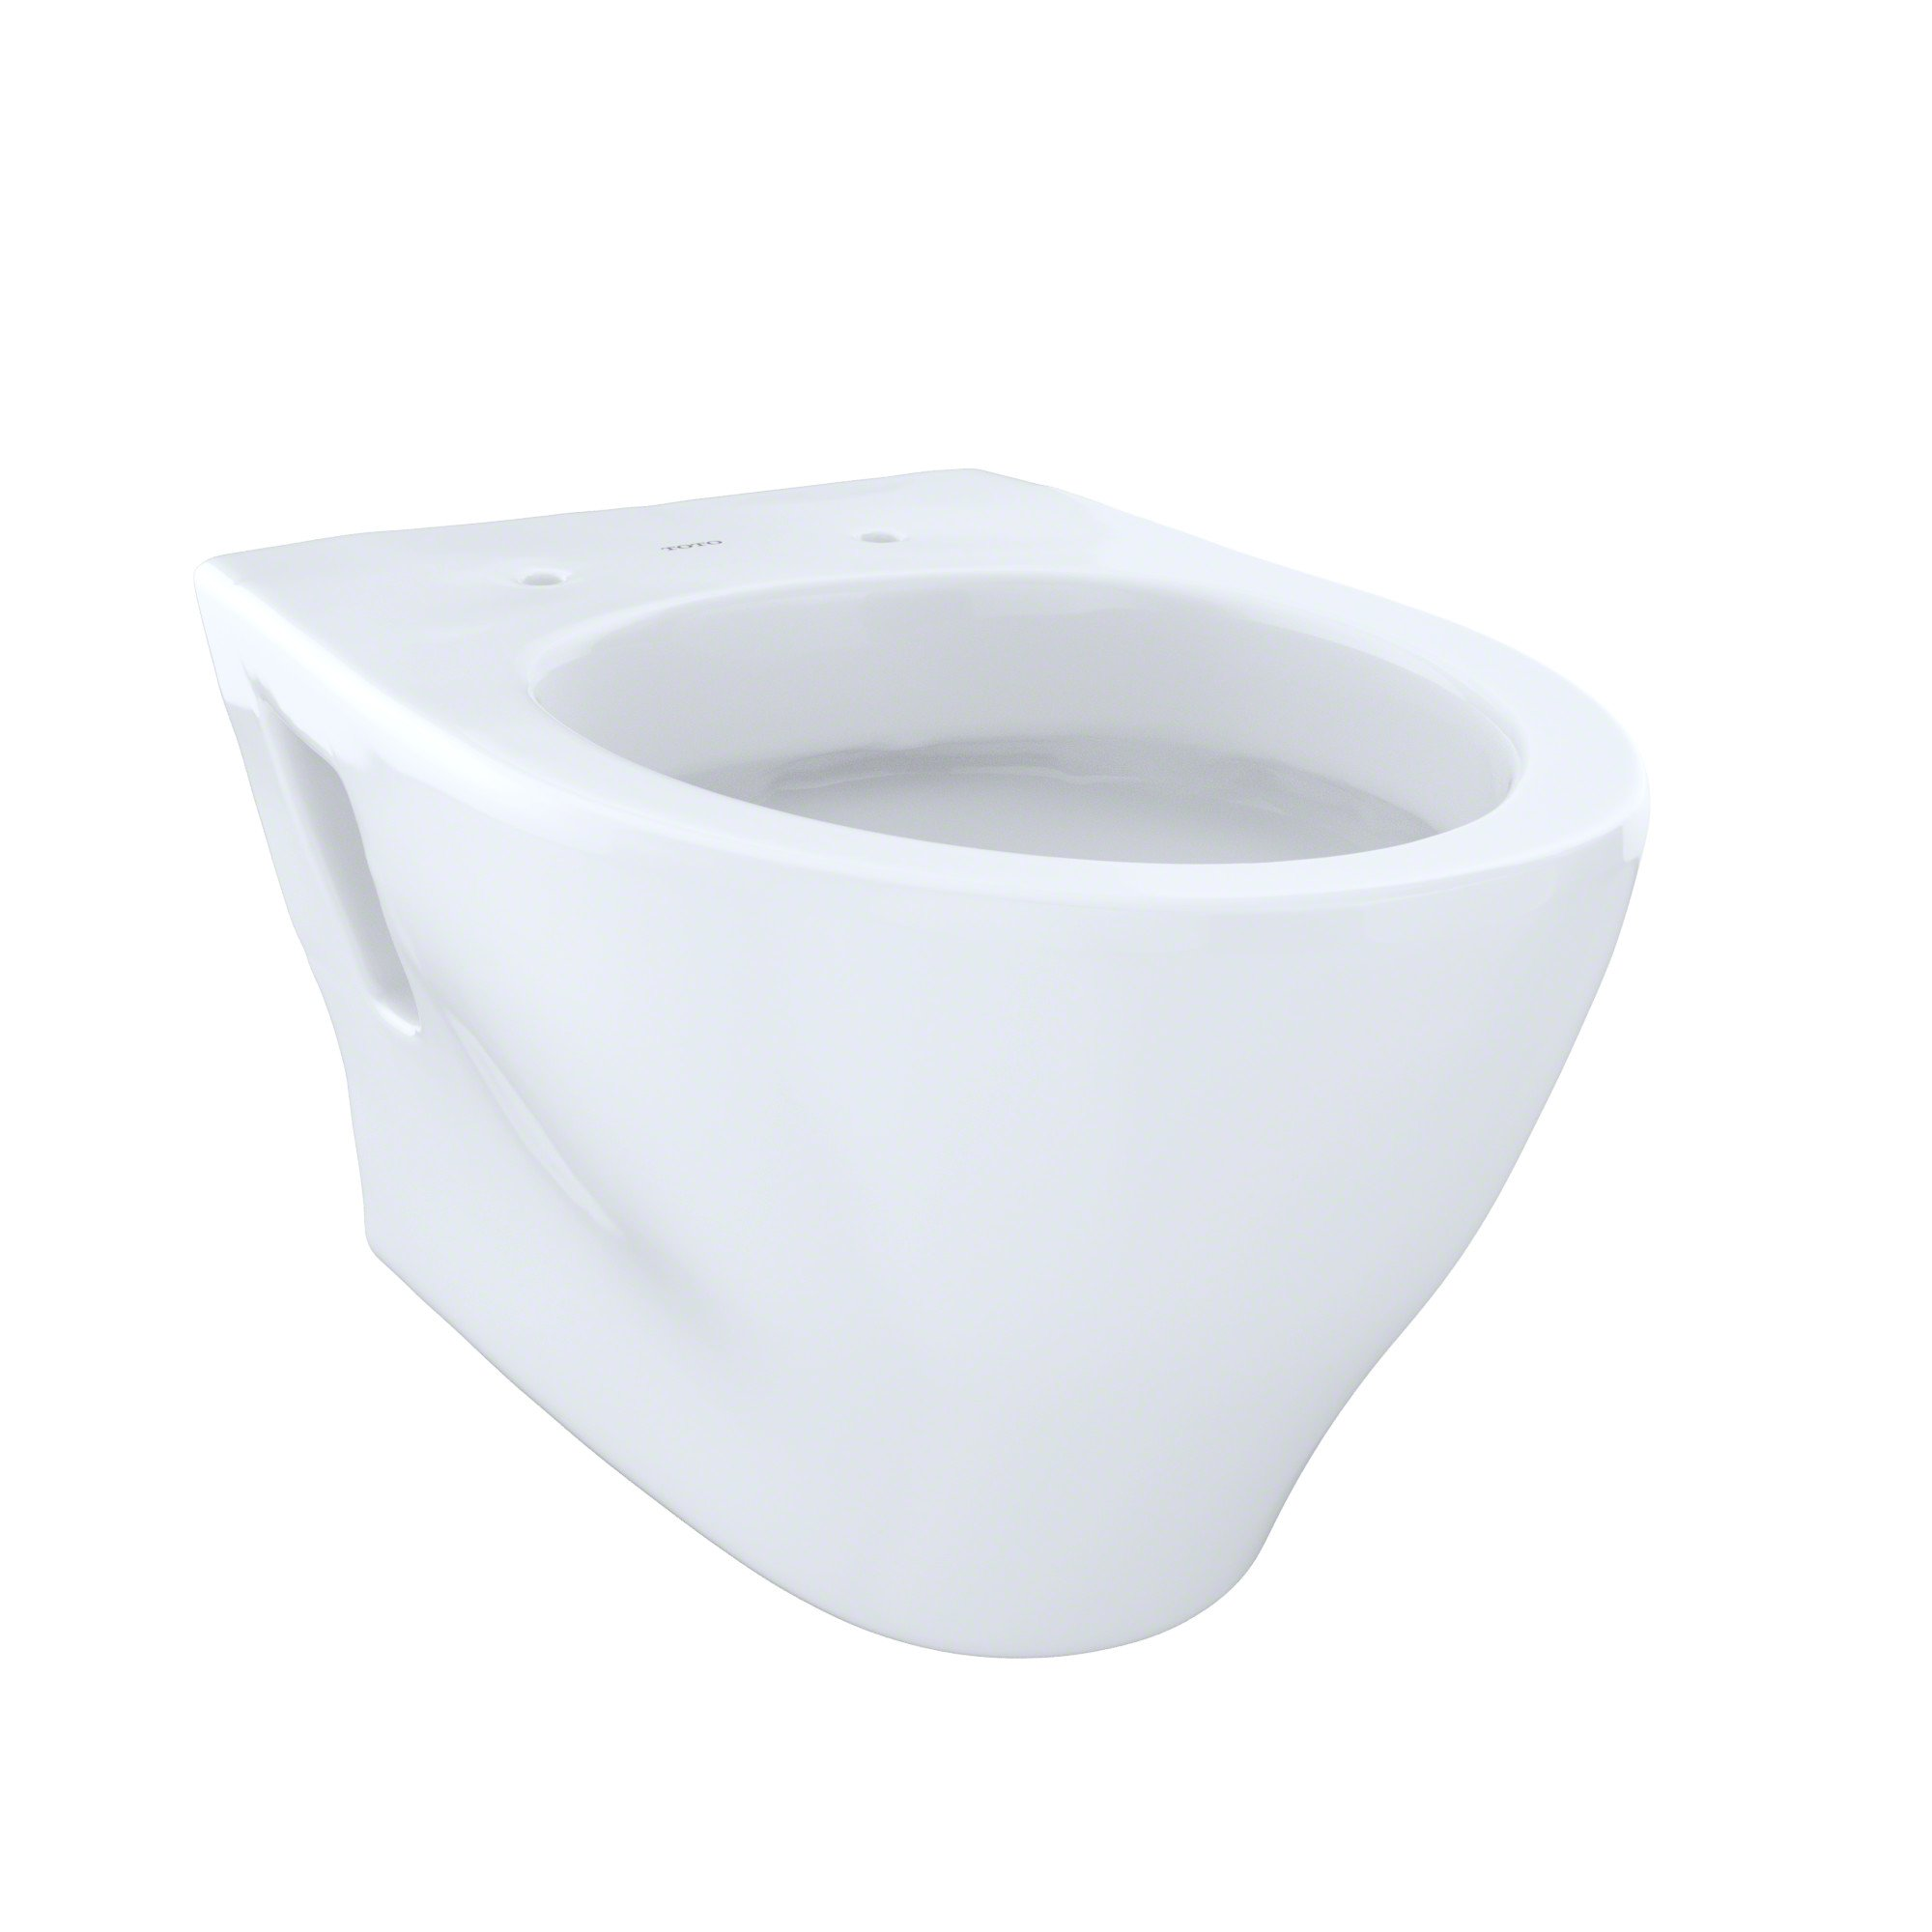 Toto CT418FGNo.01 Aquia Wall-Hung Dual-Flush Toilet, 1.6-GPF and 0.9-GPF Cotton - CT418FG#01 by TOTO